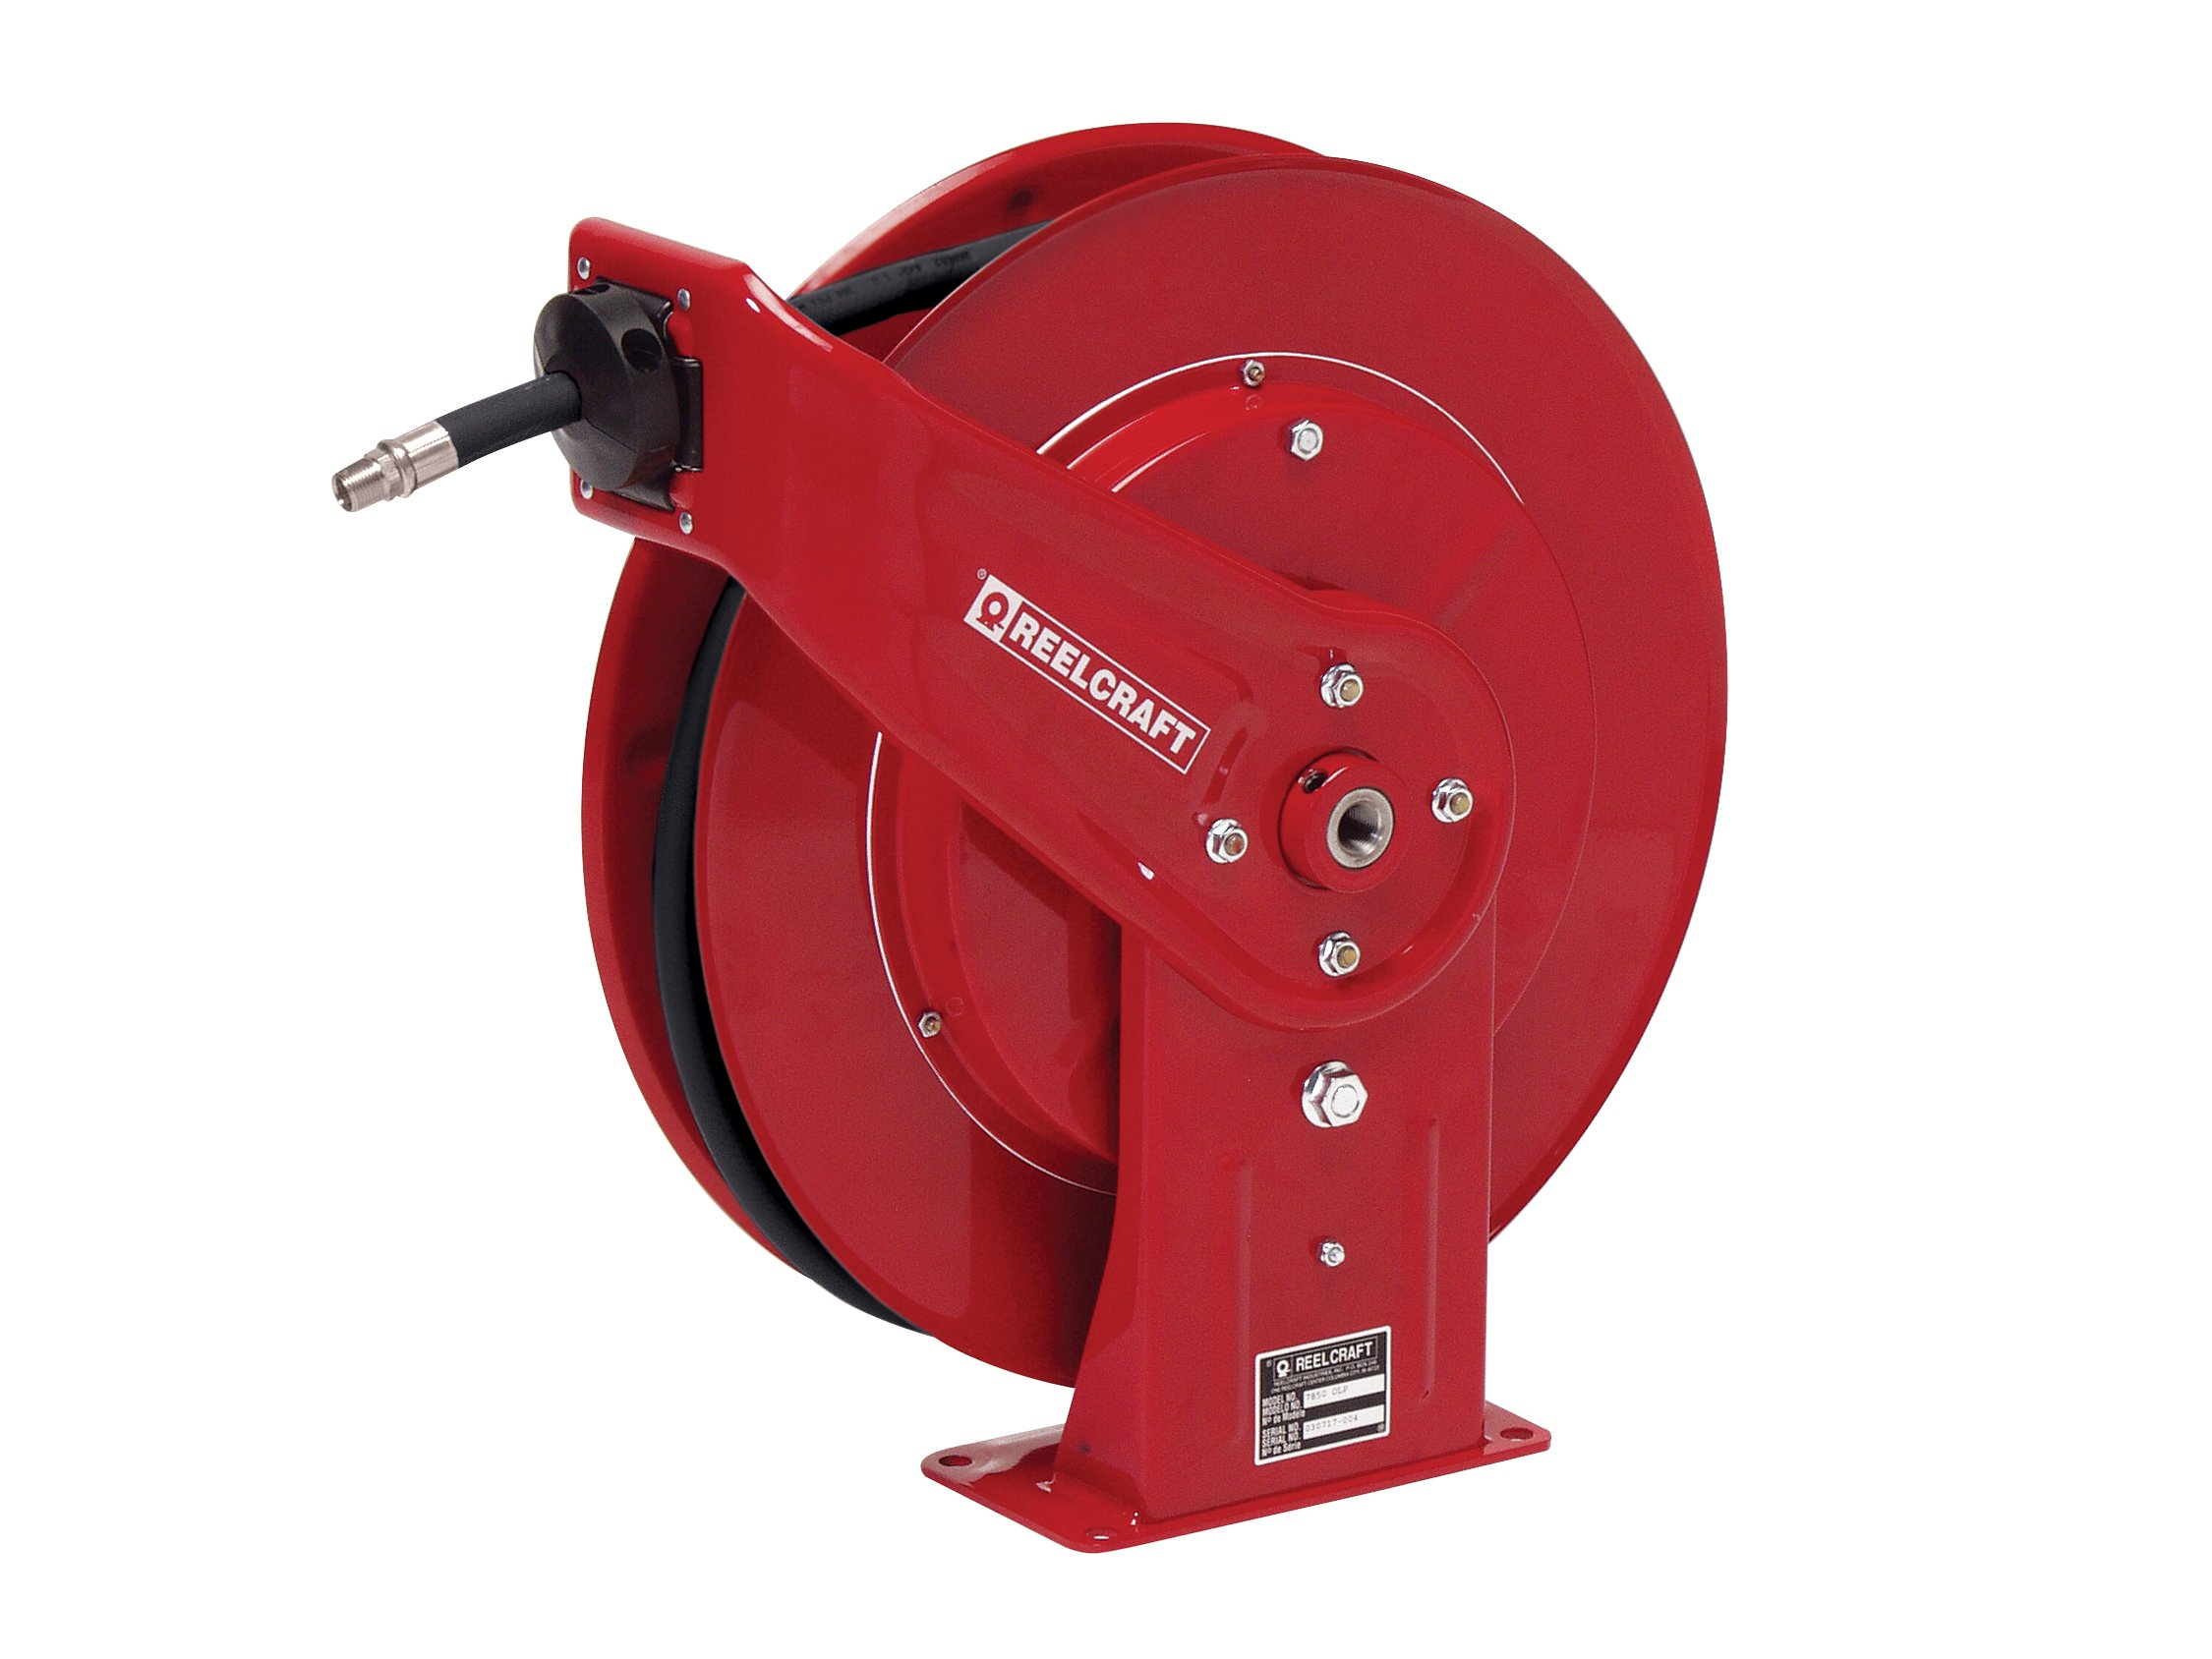 Reelcraft 7650 OHP 3/8-Inch by 50-Feet Spring Driven Hose Reel for Grease by Reelcraft (Image #1)